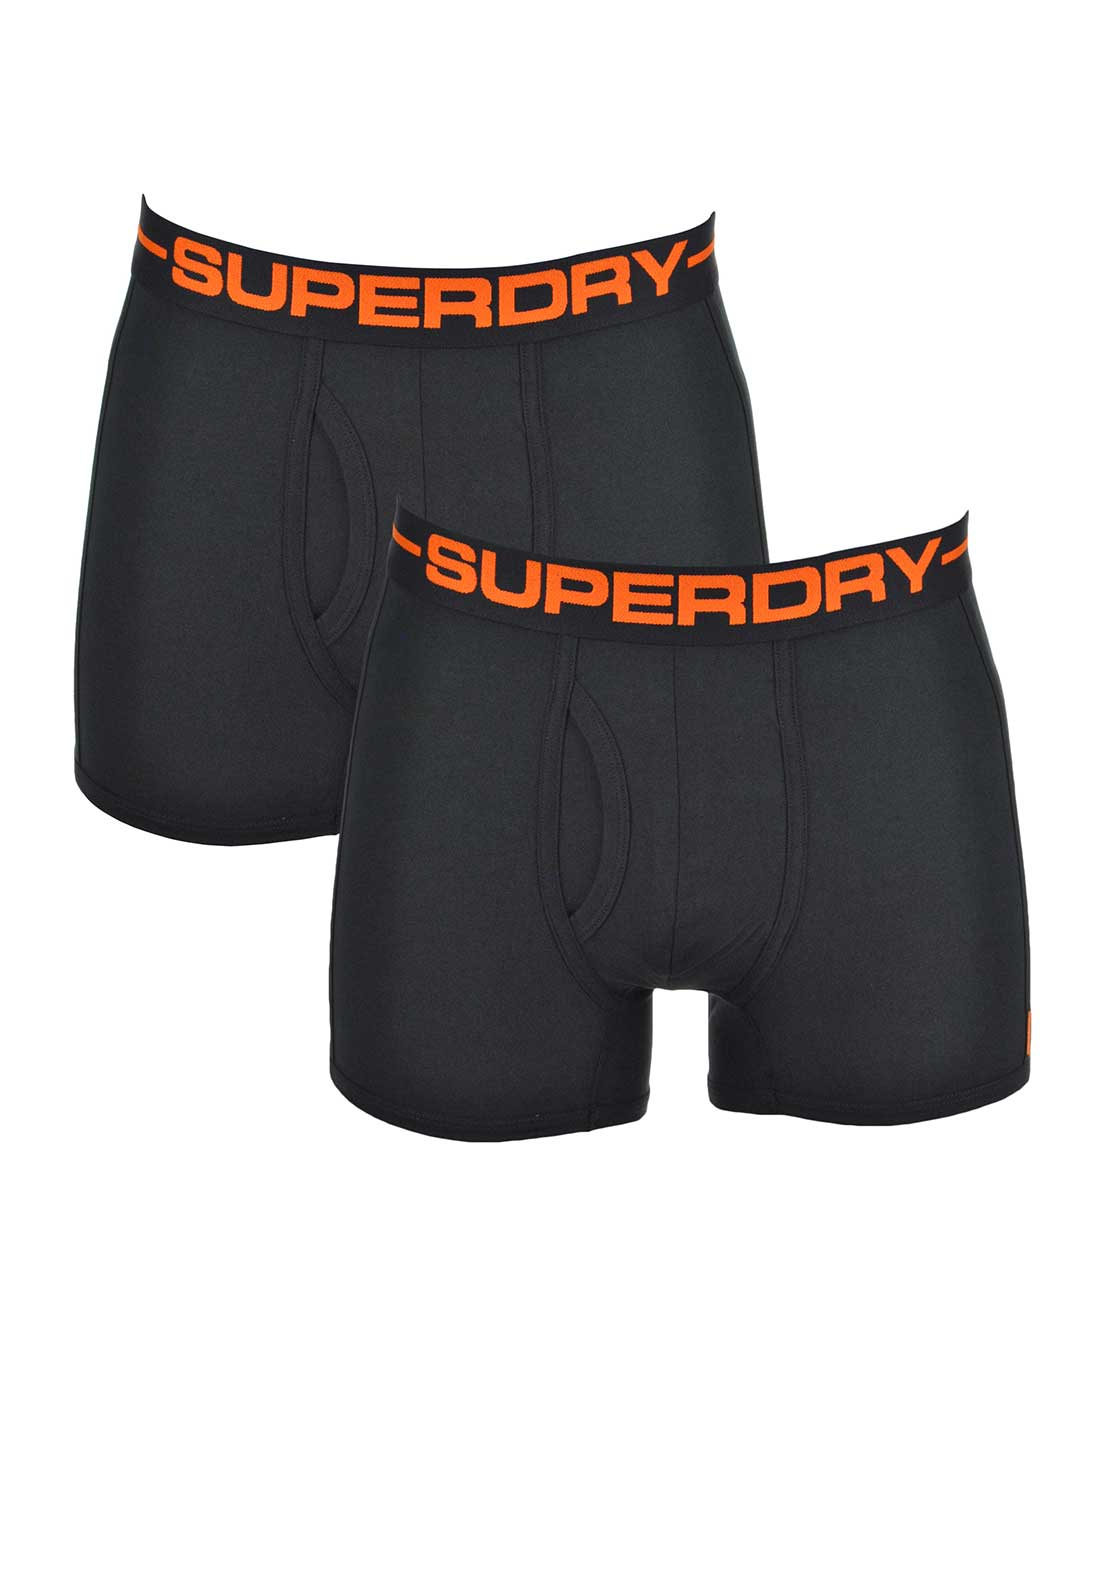 Superdry Mens Black Label 2 Pack Sport Boxers, Black